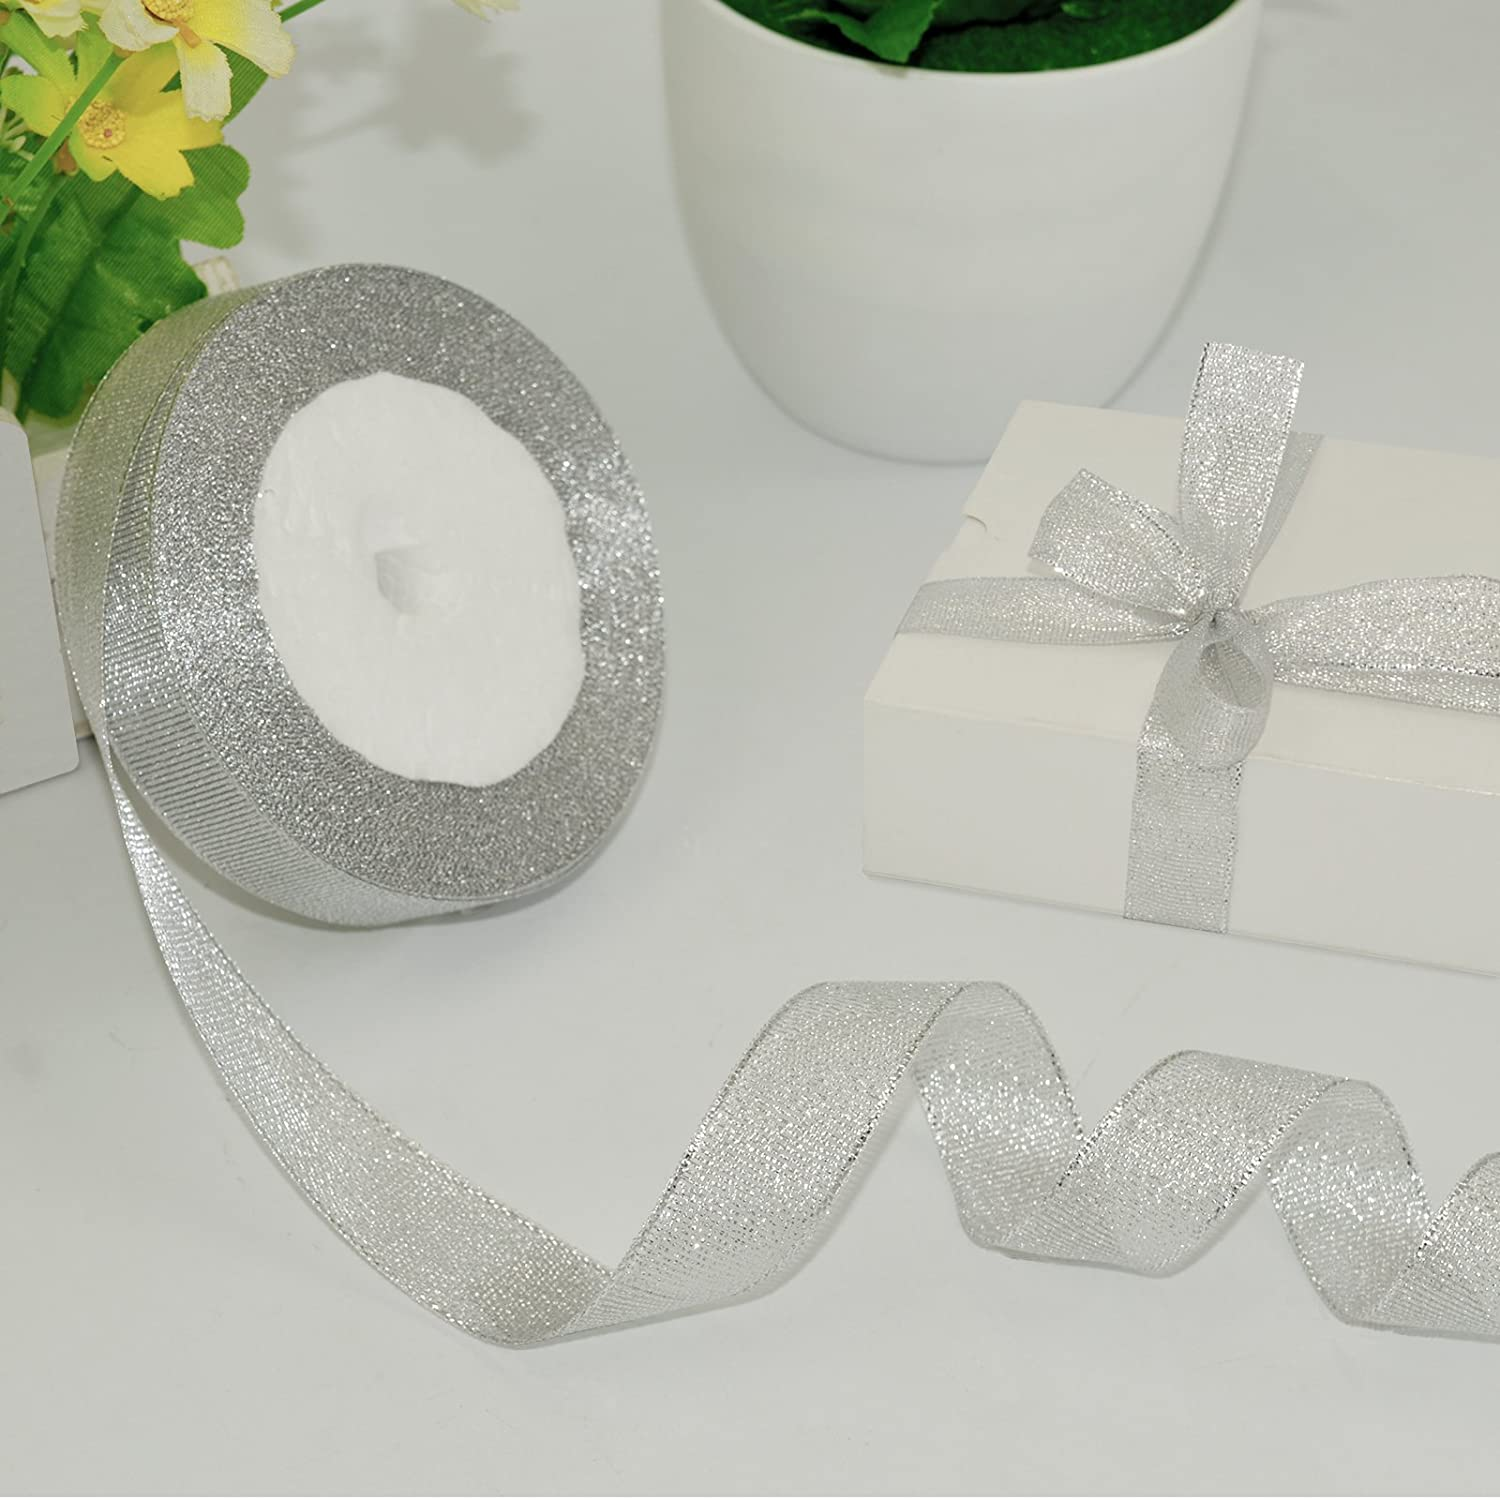 Organza Ribbon,KAKOO 2 Pack 25 Yard 20mm Wide Glitter Trimmings Decorative Ribbons for Gift Wrapping Gold/&Silver